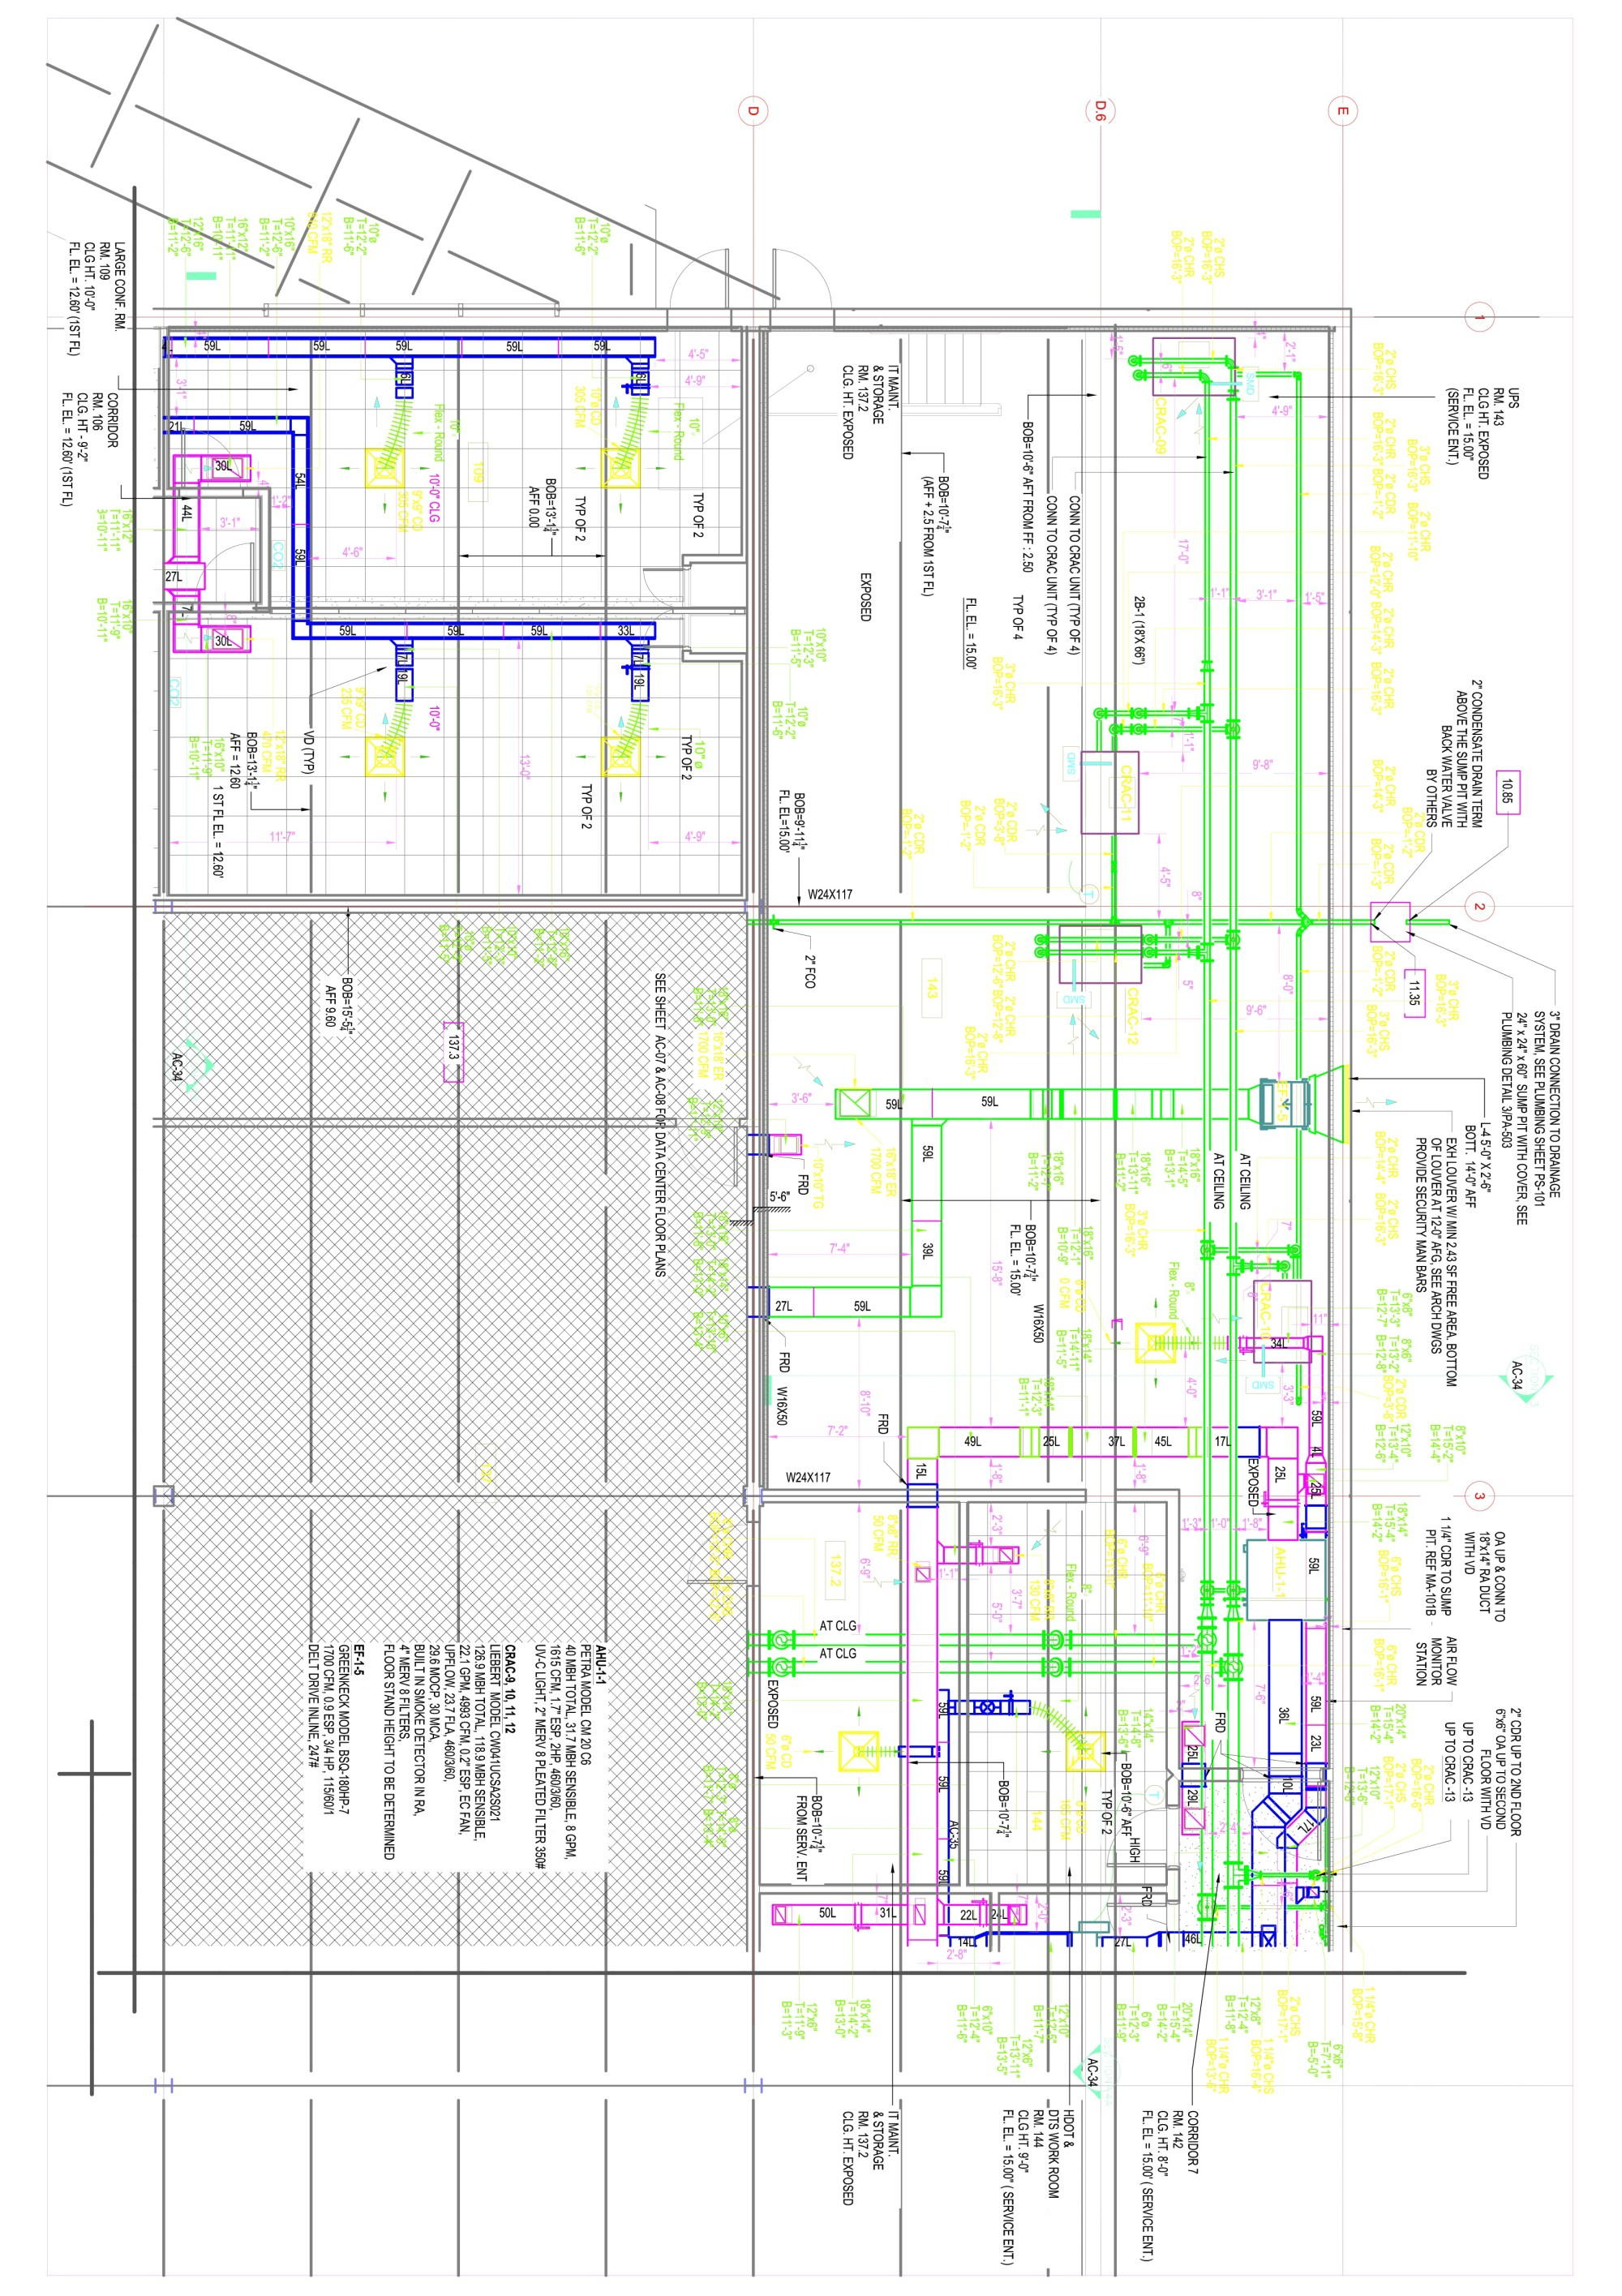 hight resolution of wrg 6251 hvac drawing keyclick here for high resolution